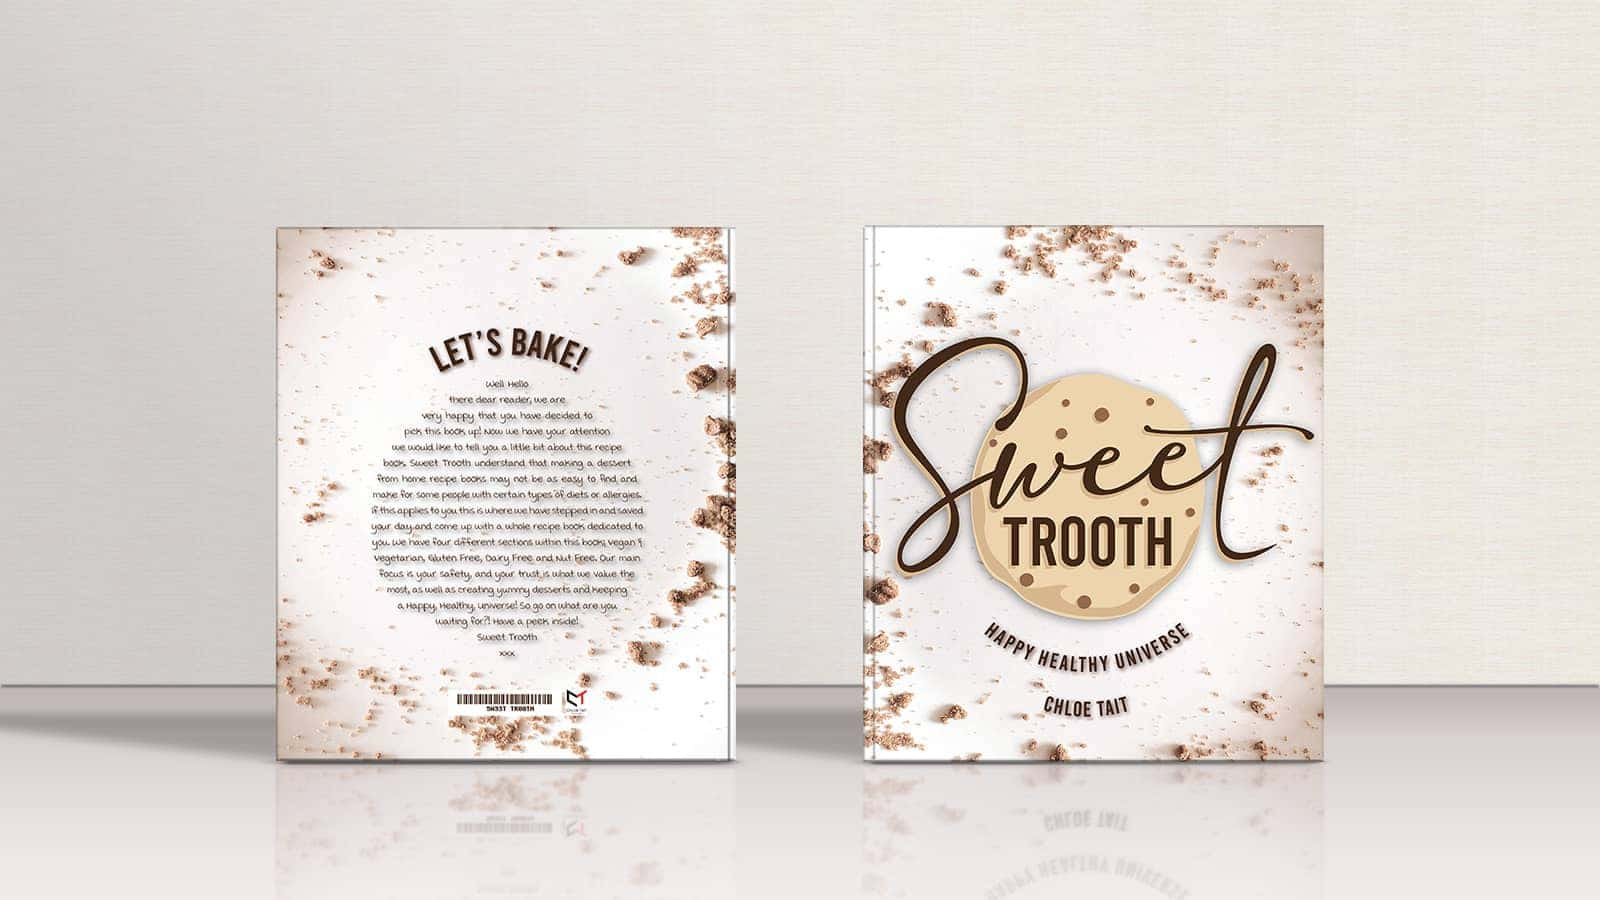 Chloe Tait Graphics and Design